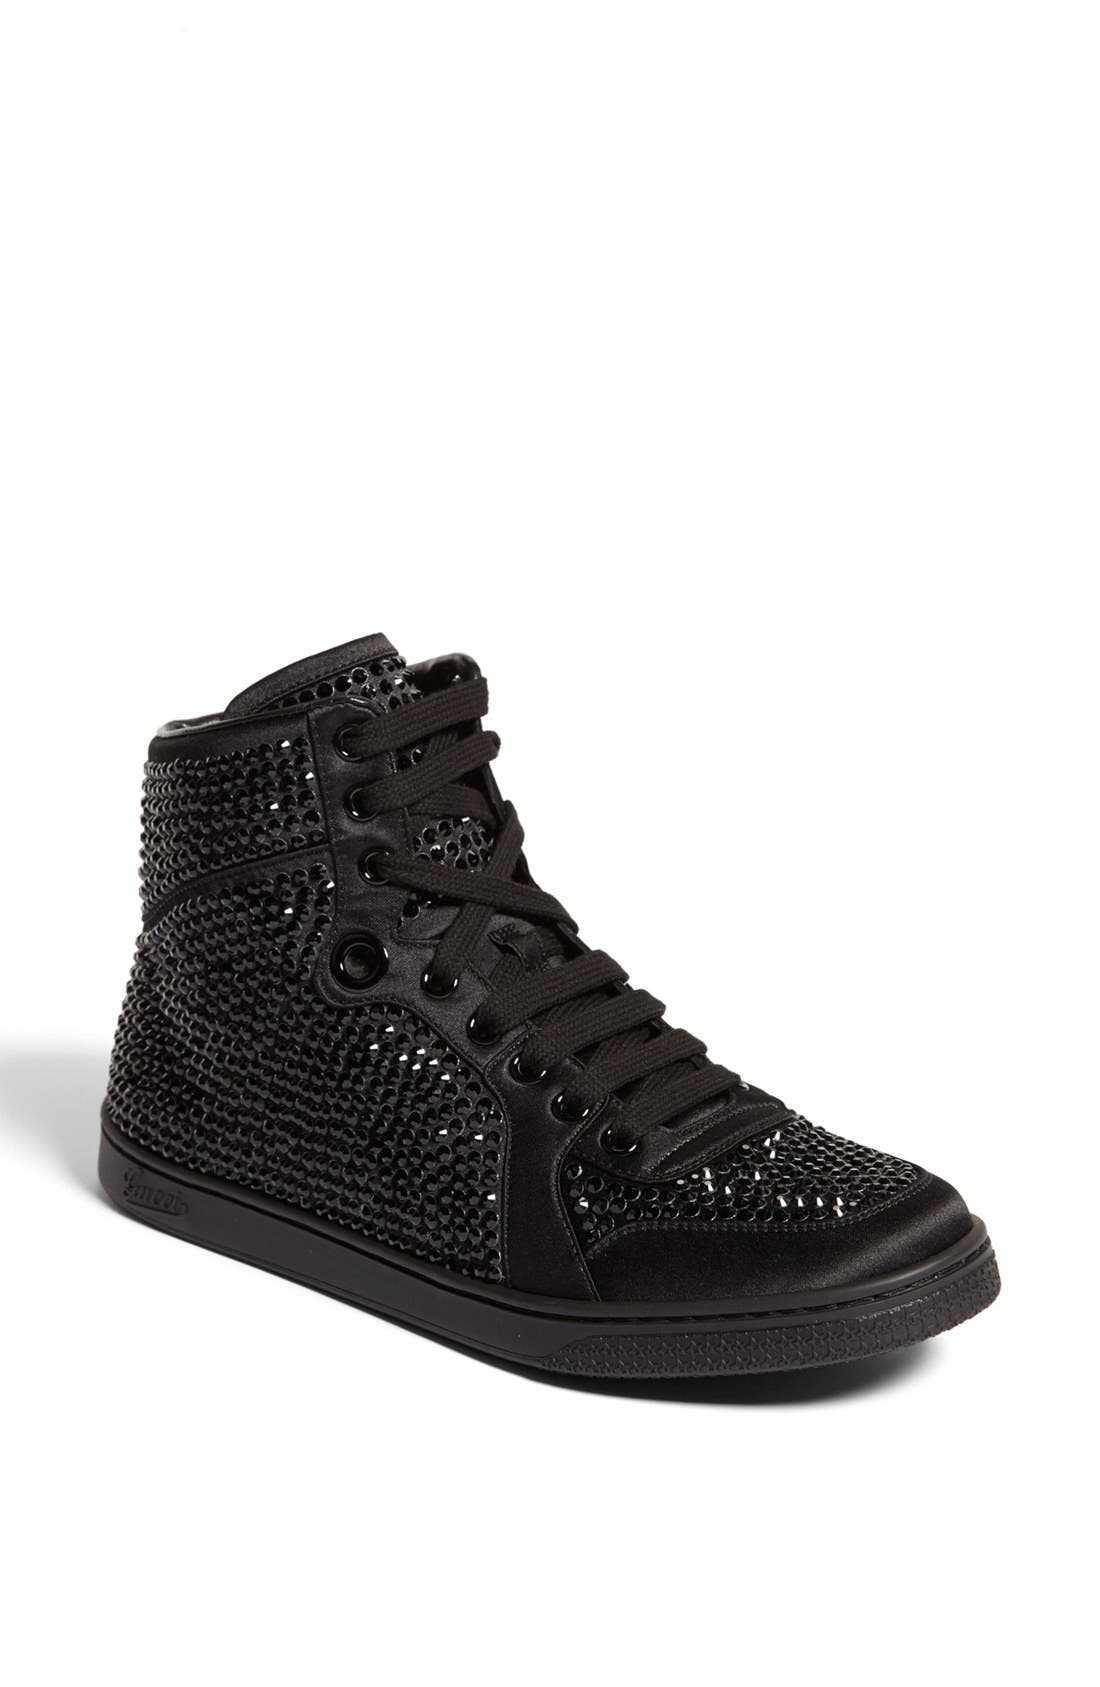 Alternate Image 1 Selected - Gucci 'Coda' Crystal Stud High Top Sneaker